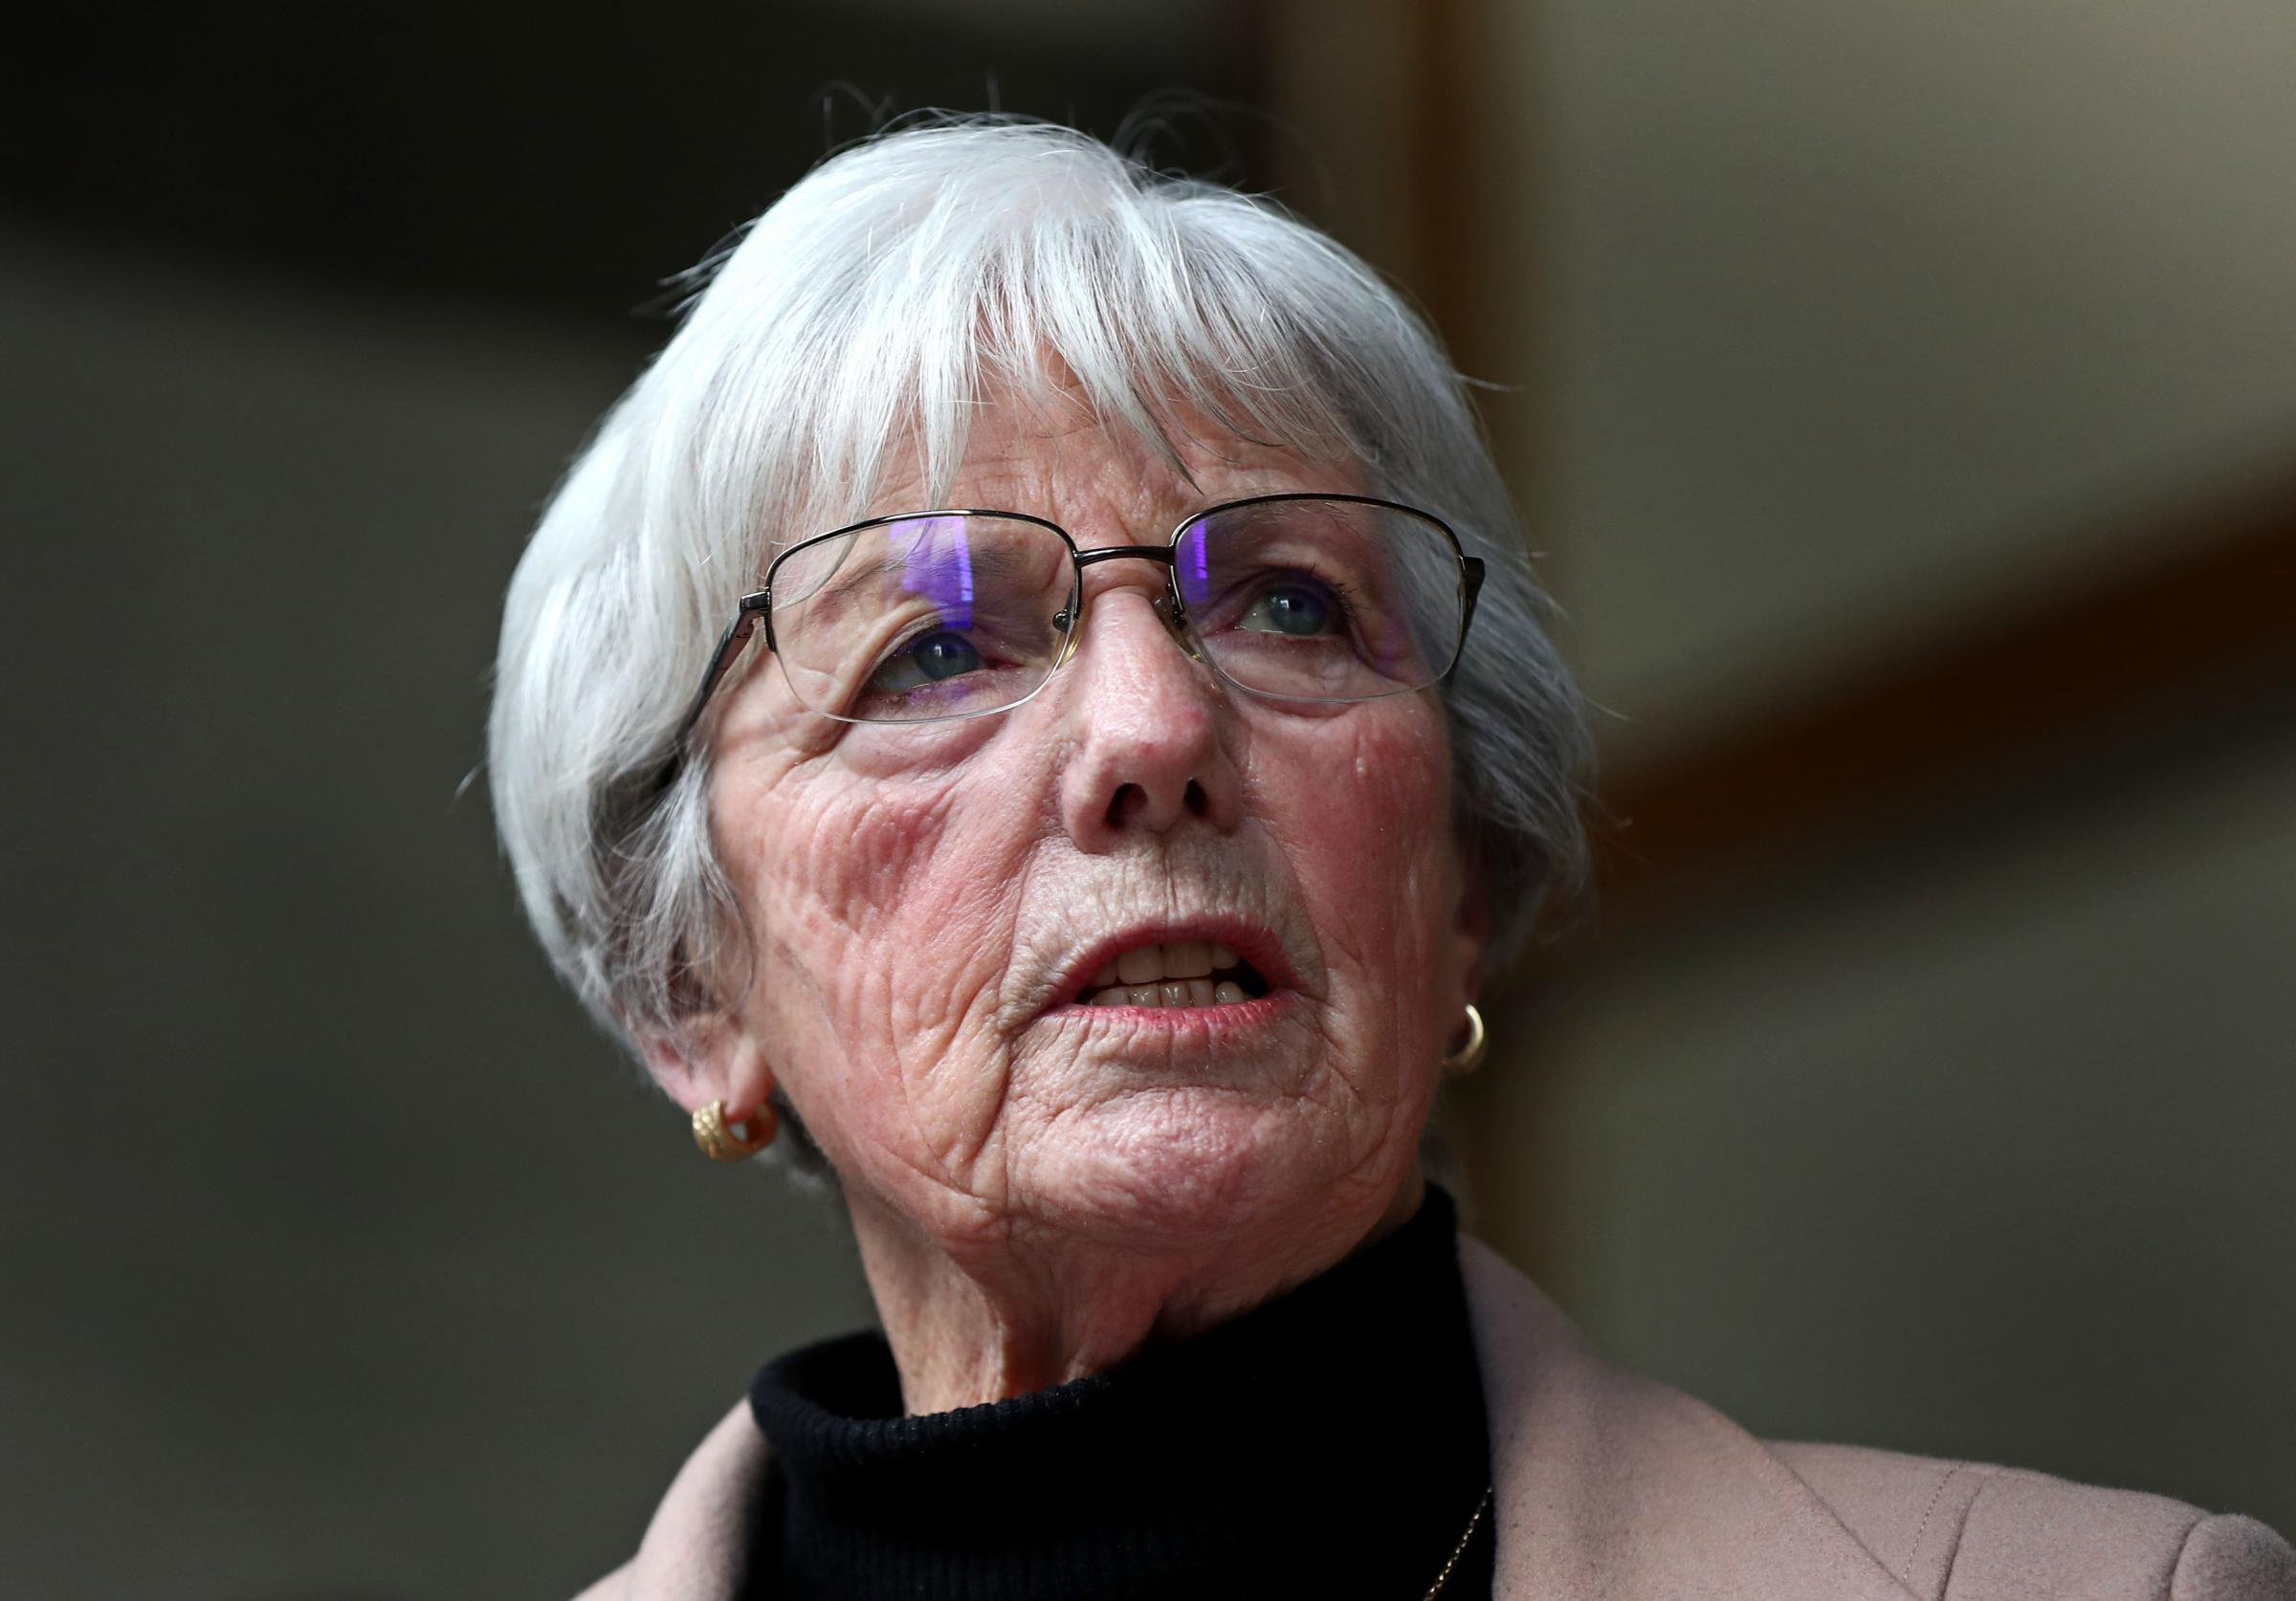 Marie McCourt hopes judicial review could overturn Parole Board's ruling to release her daughter's killer